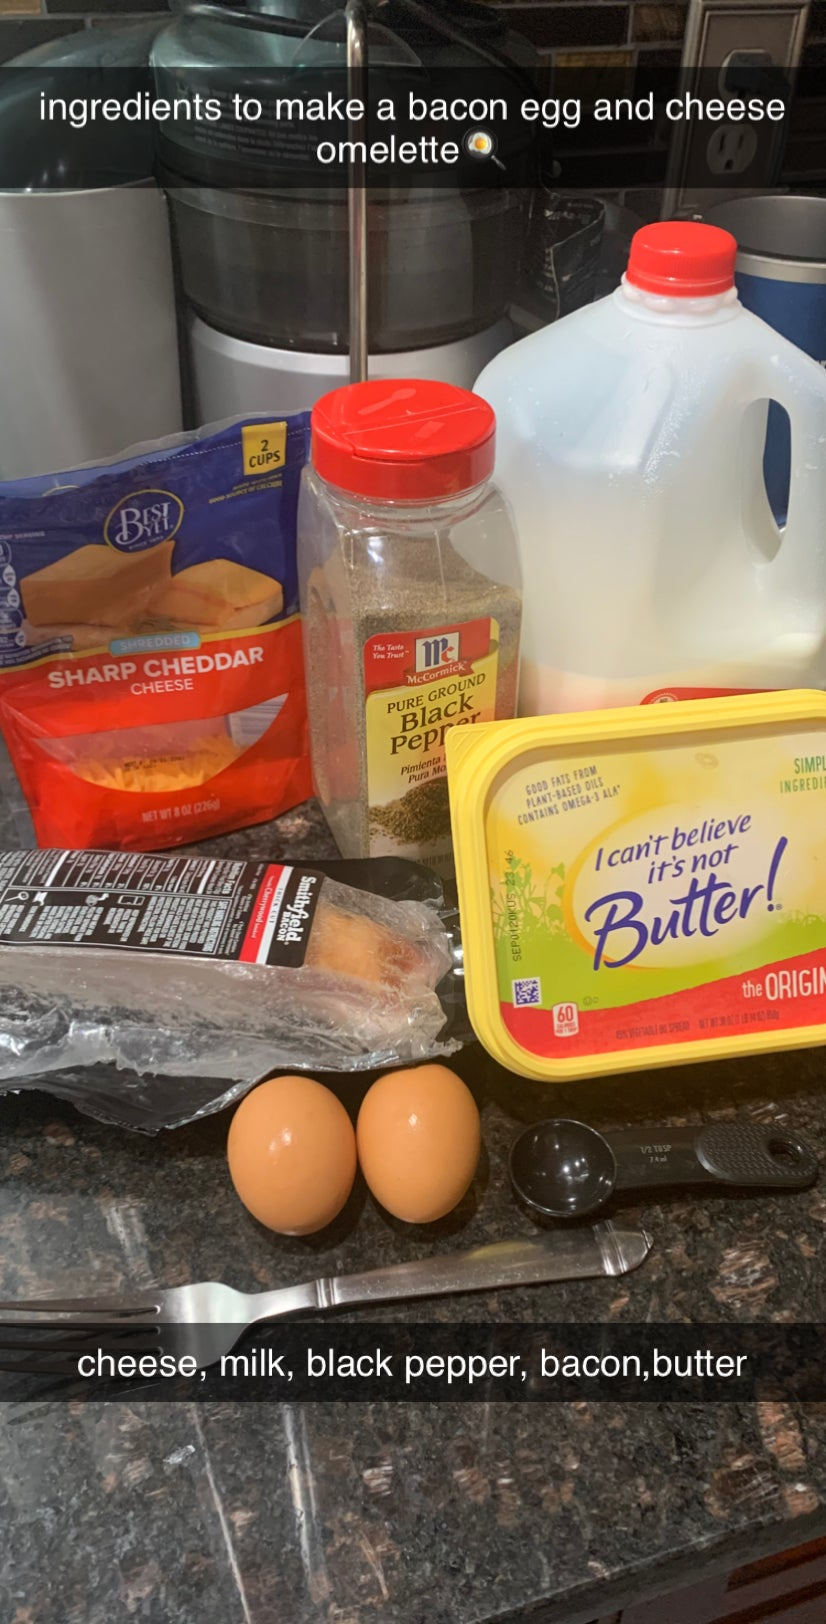 How to Make a Bacon, Egg and Cheese Omelette